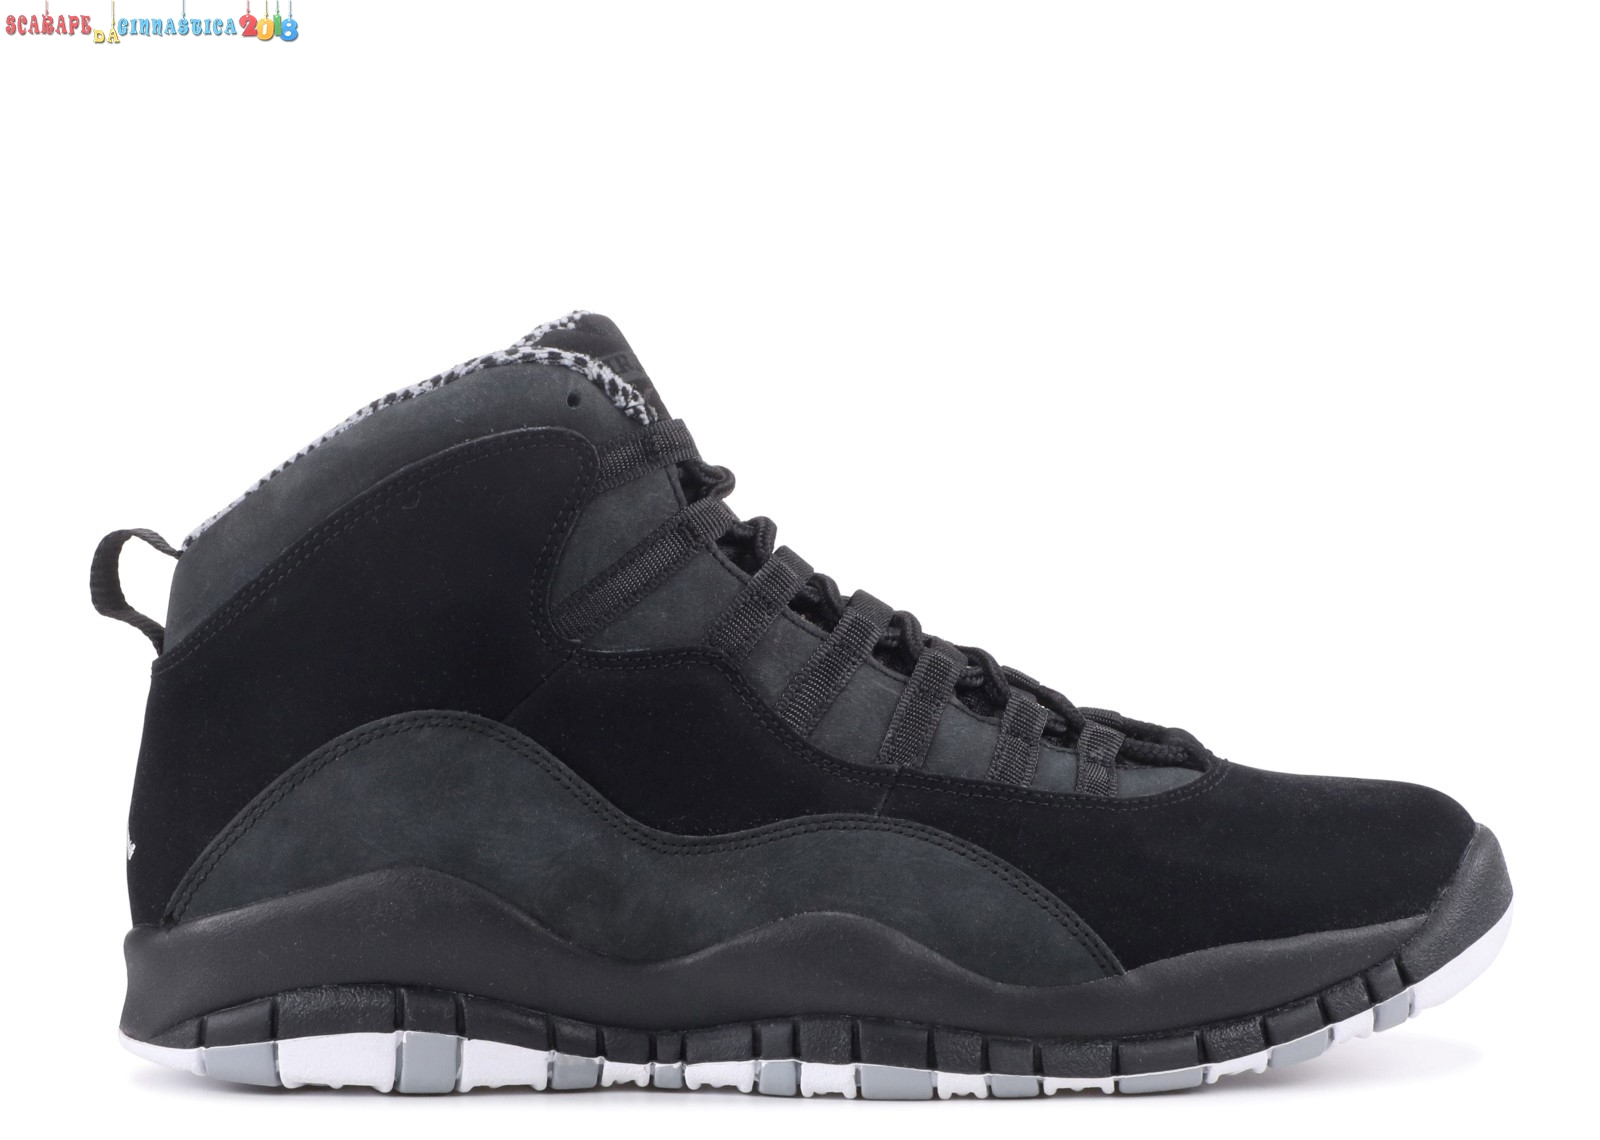 "Buy Air Jordan 10 Retro ""Stealth"" Nero Bianca (310805-003) - Uomo - Scarpe da basket"